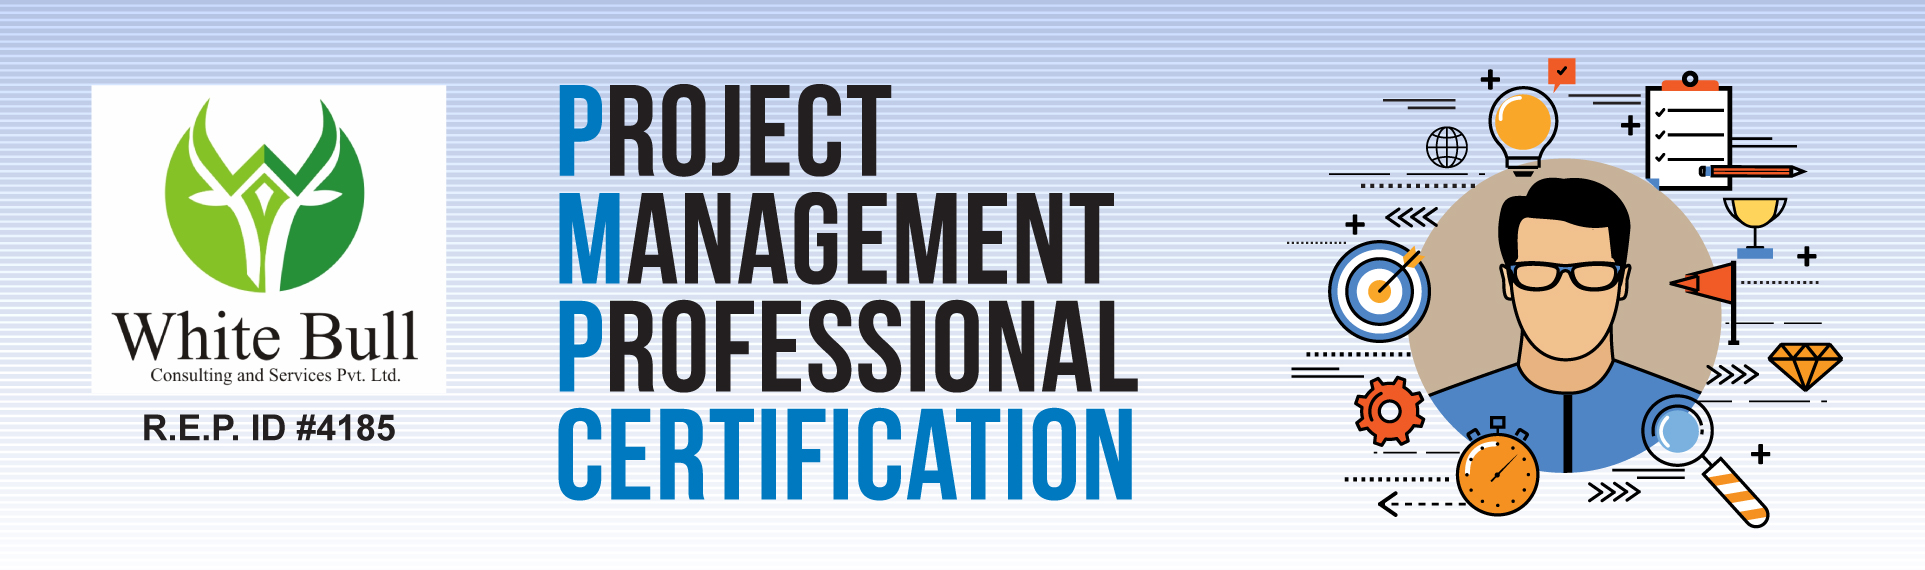 Project management professional - Project Management Professional Training